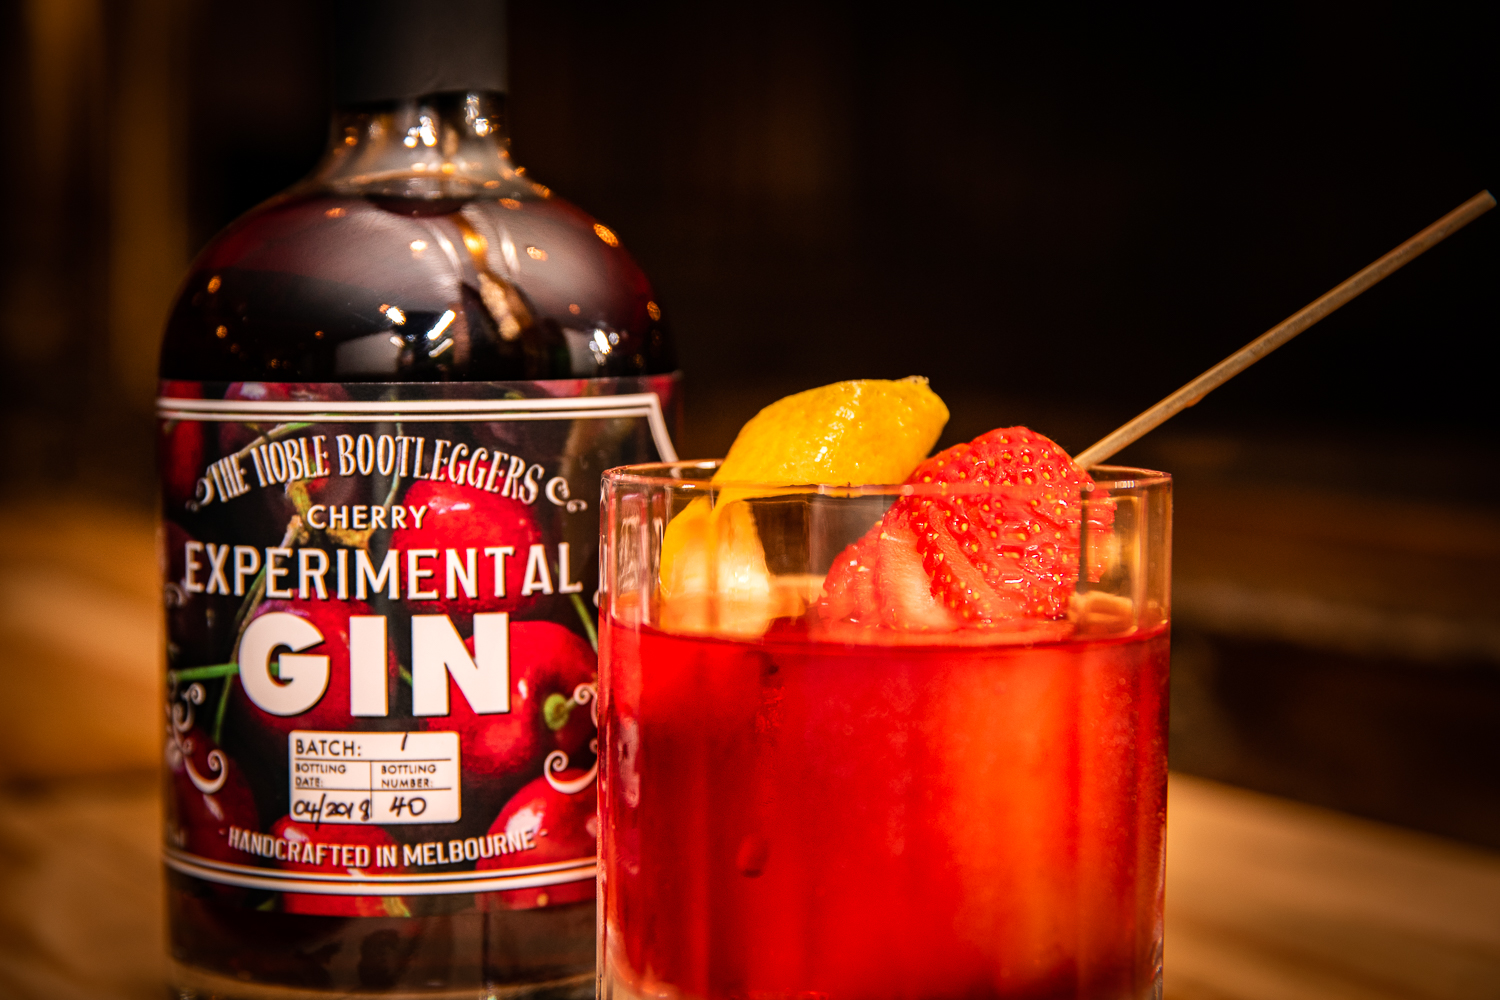 Cherry Negroni - 30mls Noble Bootleggers Cherry Gin20mls Campari20mls Lillet Rose15mls Antica FormulaStrawberry & lemon peel garnishAdd all ingredients to a mixing glass, add ice and stir until the glass becomes frosted. Pour over a large ice cube in a double rocks glass. Garnish with strawberry and lemon peel twist.